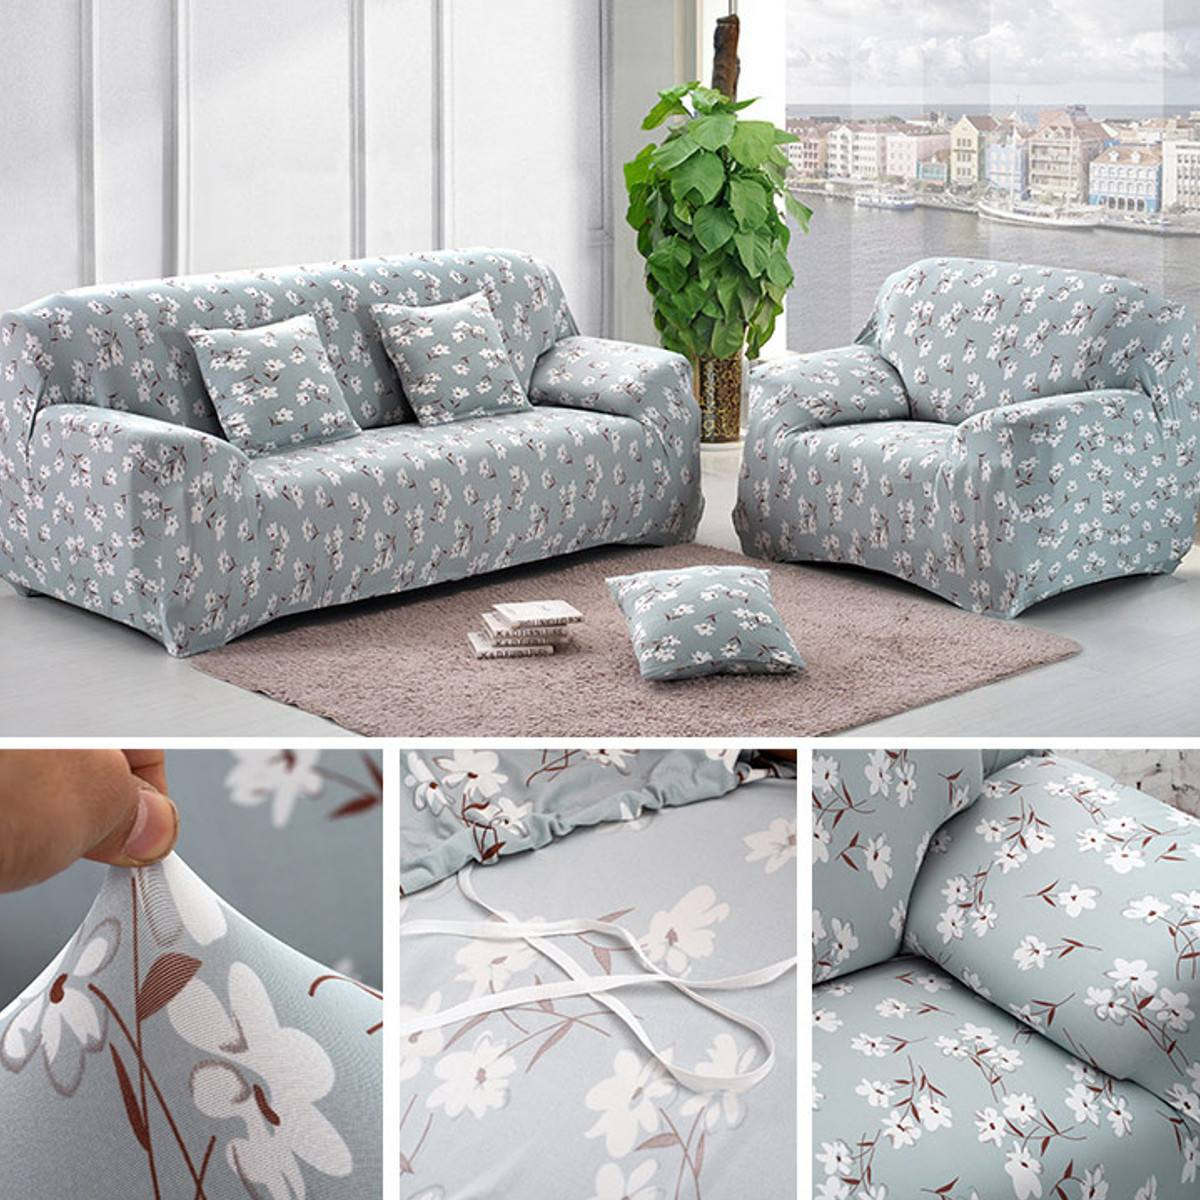 Floral Elastic Slipcover Stretch Sofa Seat Couch Protect Cover Household Dustproof Armrest Sofa Protective Covers 1 2 3 4 SeaterFloral Elastic Slipcover Stretch Sofa Seat Couch Protect Cover Household Dustproof Armrest Sofa Protective Covers 1 2 3 4 Seater